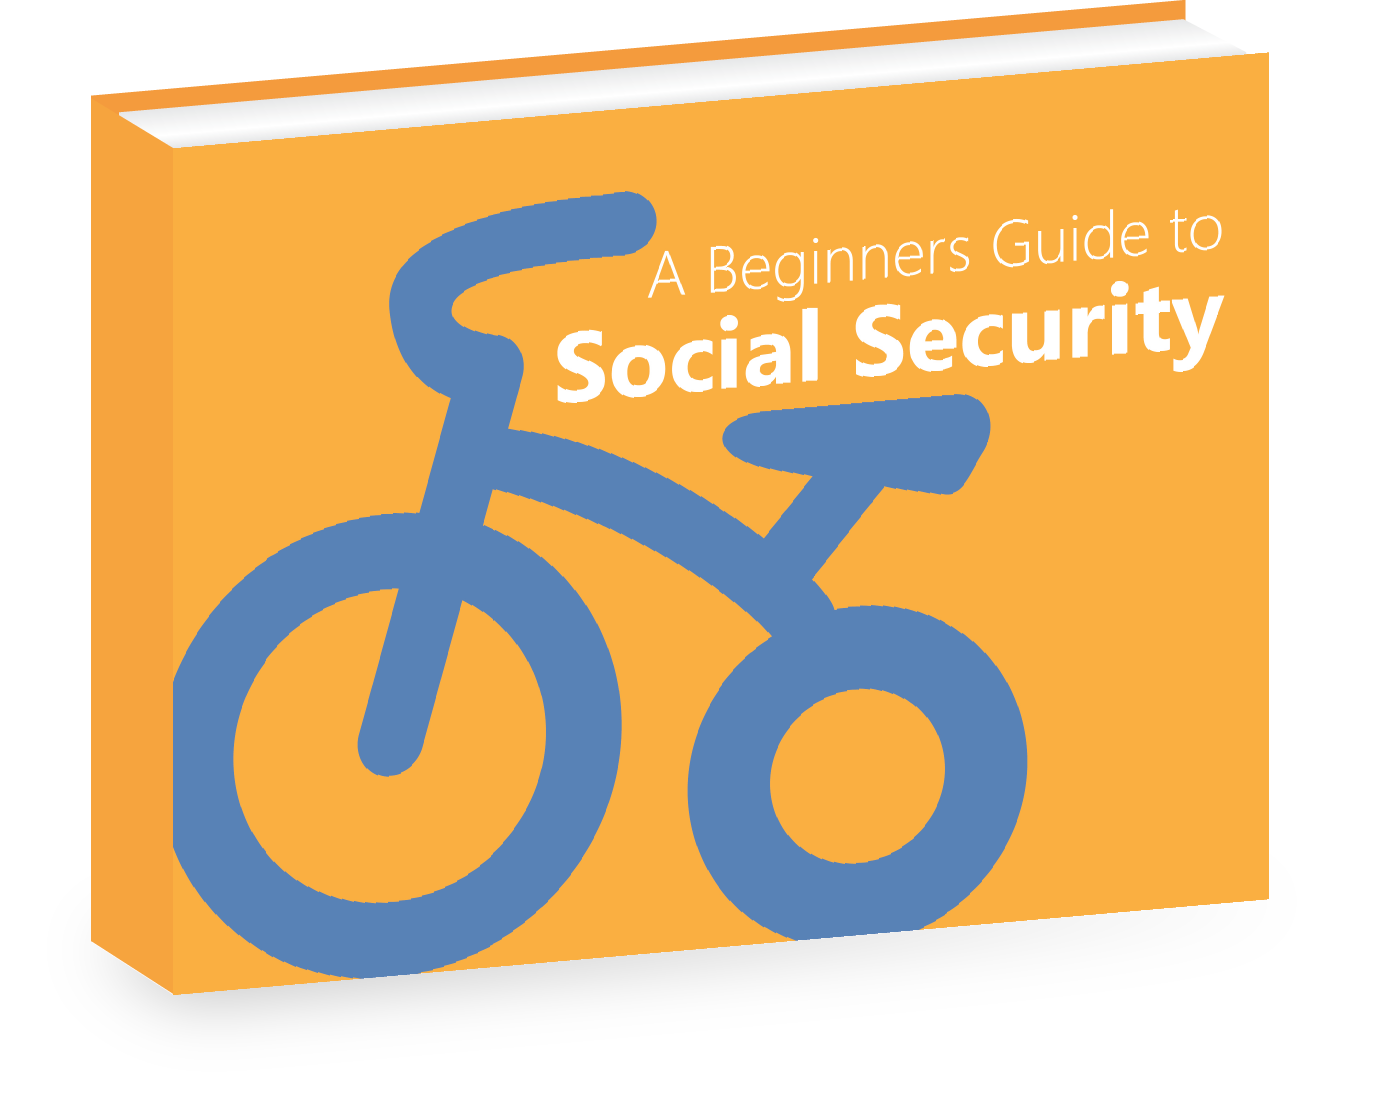 Book_Beginners_Guide_to_Social_Security.png